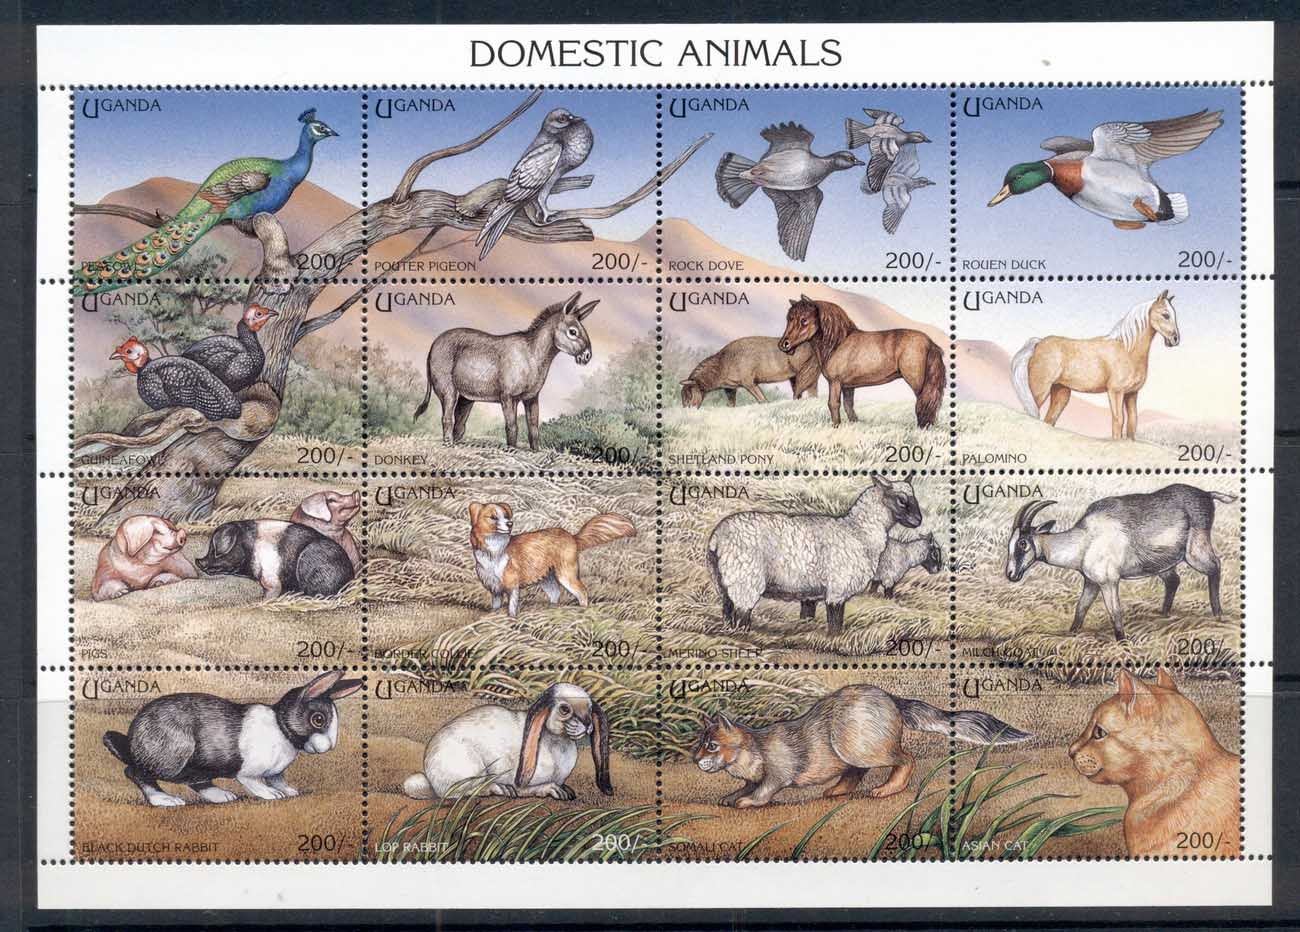 Uganda 1995 Domestic Animals, Cats & Dogs, Birds MS MUH